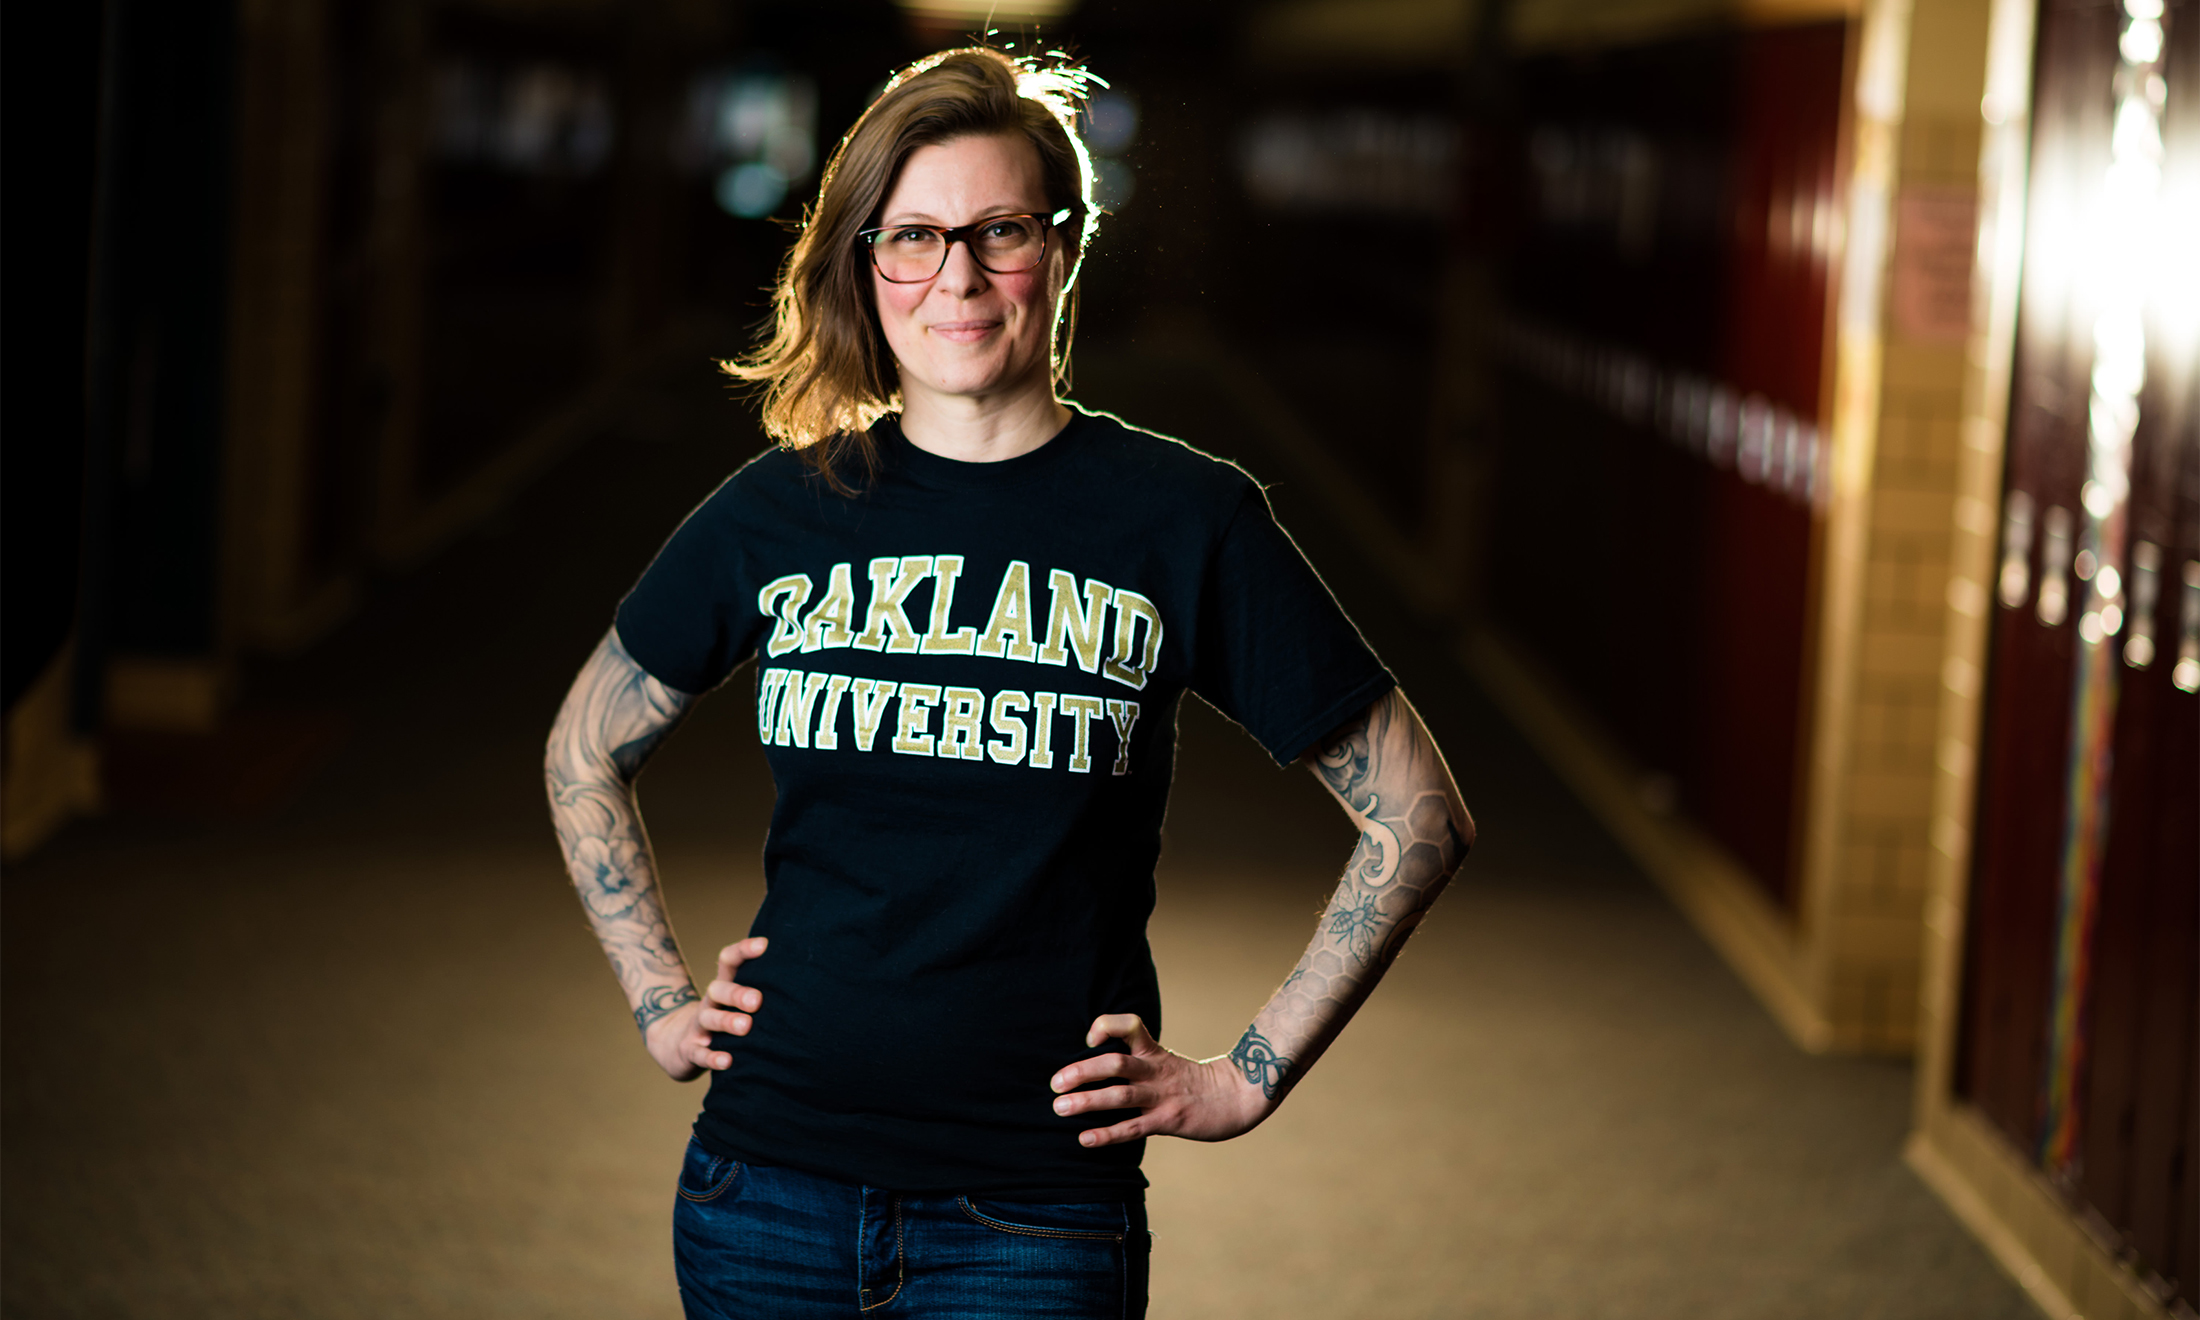 Oakland University alumna and elementary teacher, Julia Music